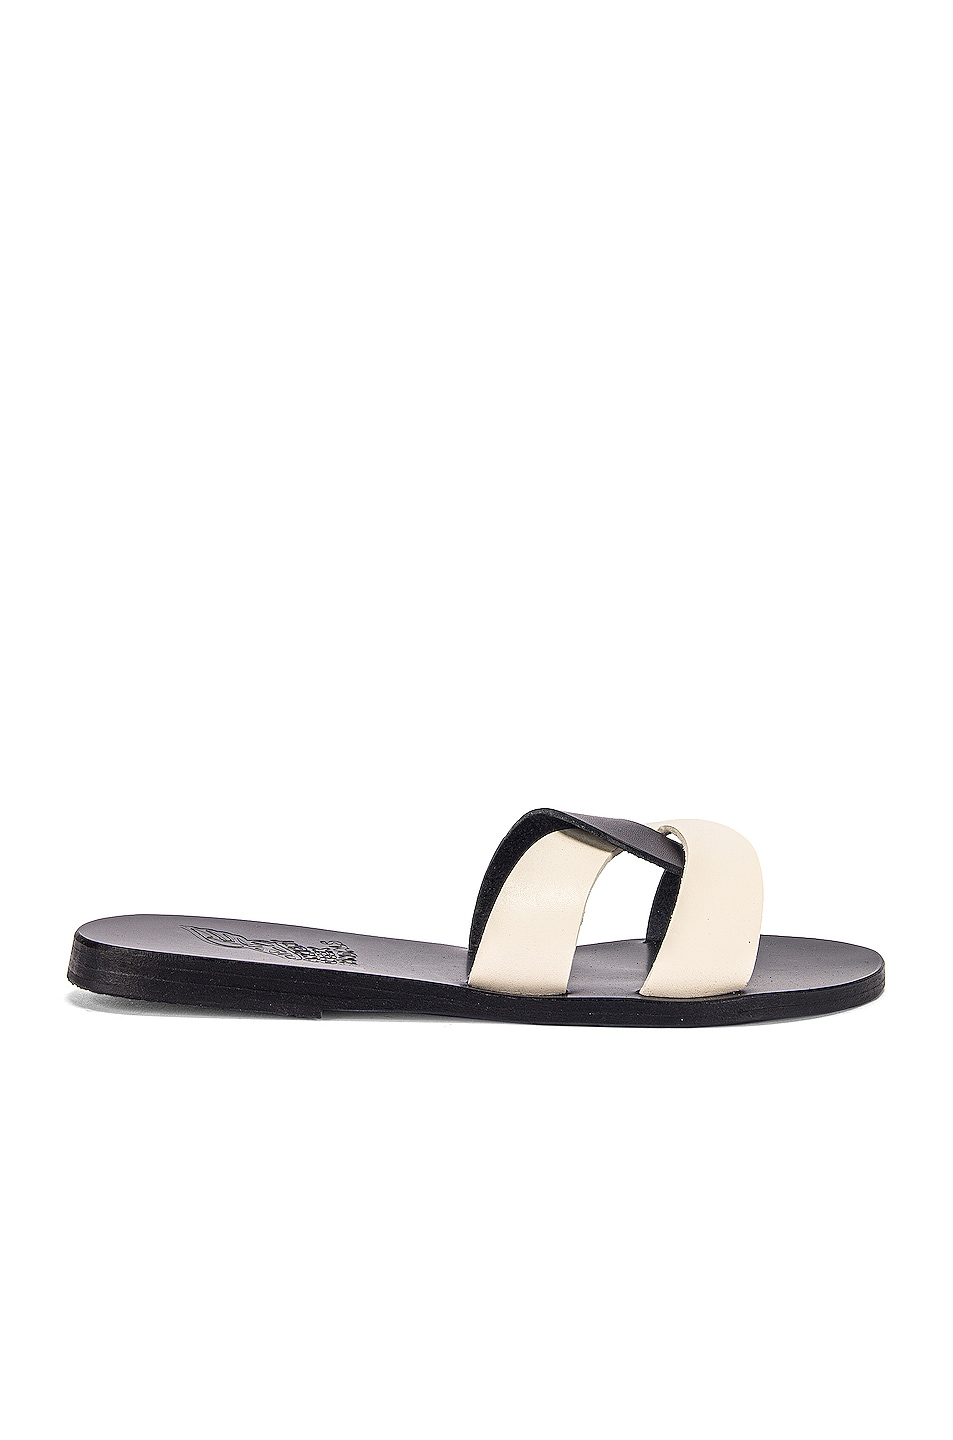 Image 1 of Ancient Greek Sandals Desmos Sandals in Black & Off White